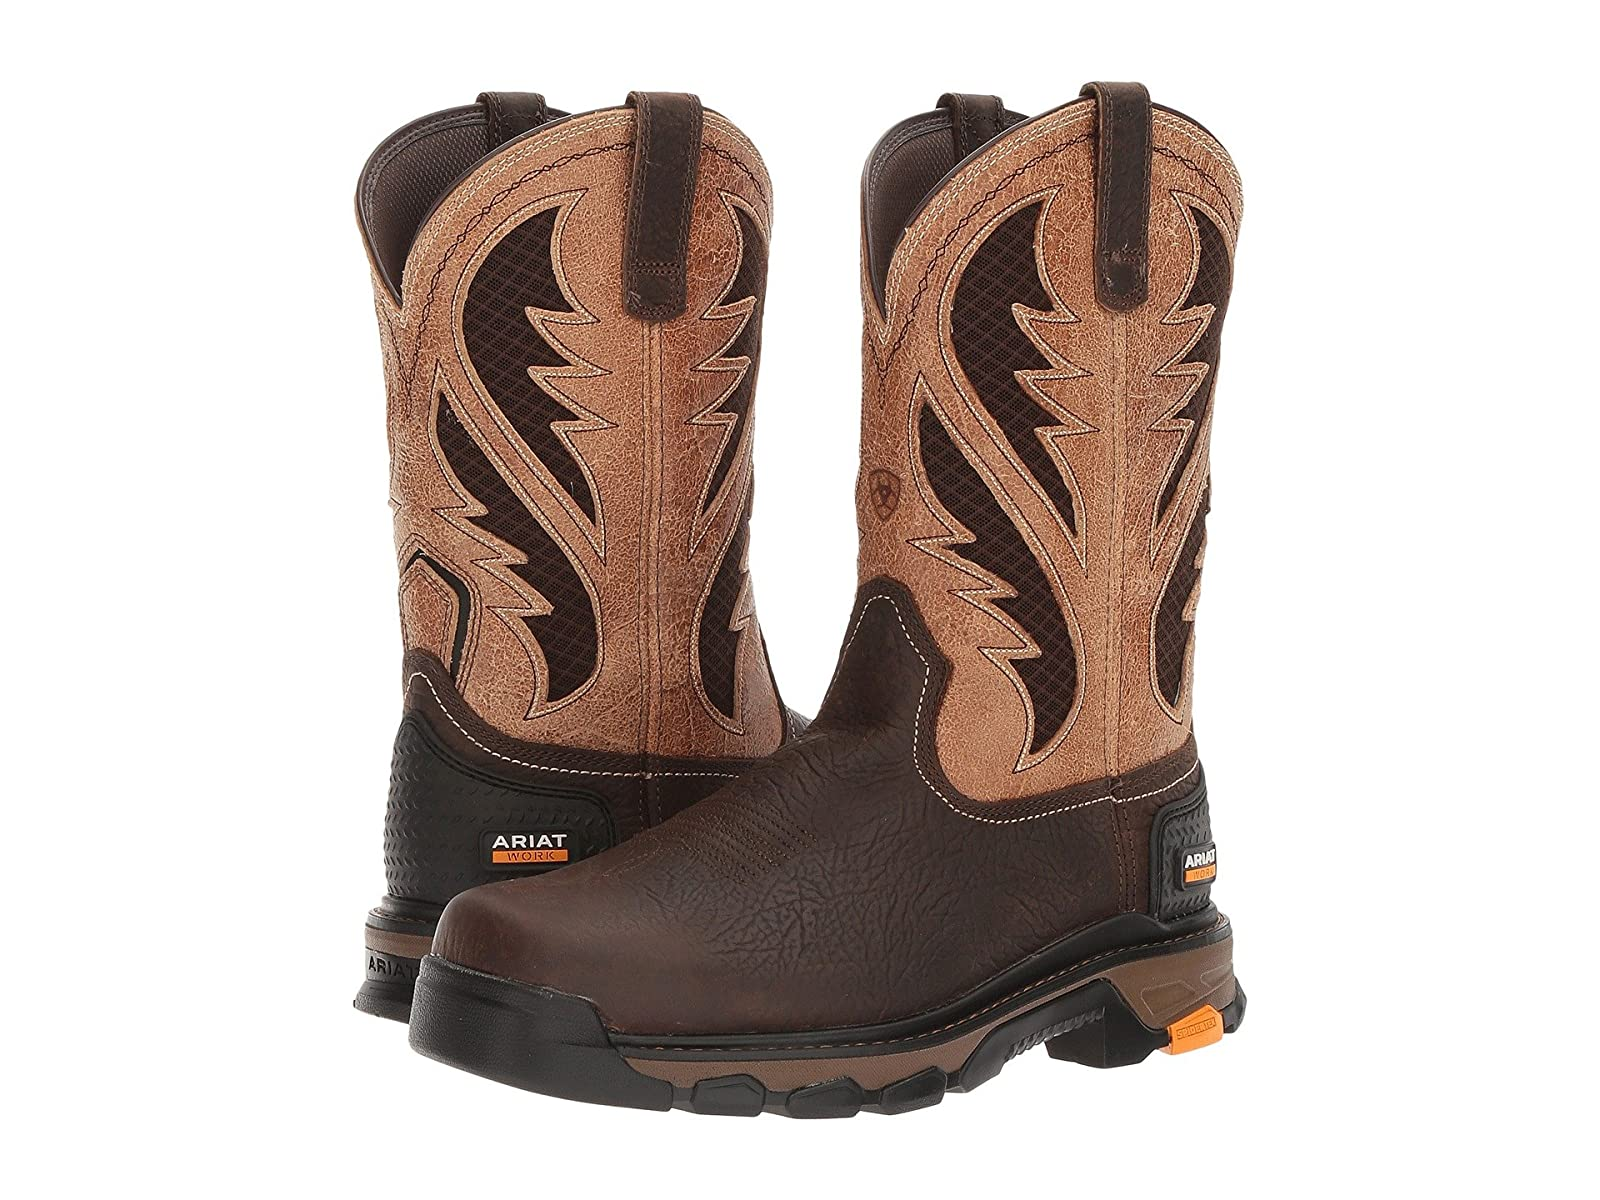 Ariat Intrepid VenttekSelling fashionable and eye-catching shoes